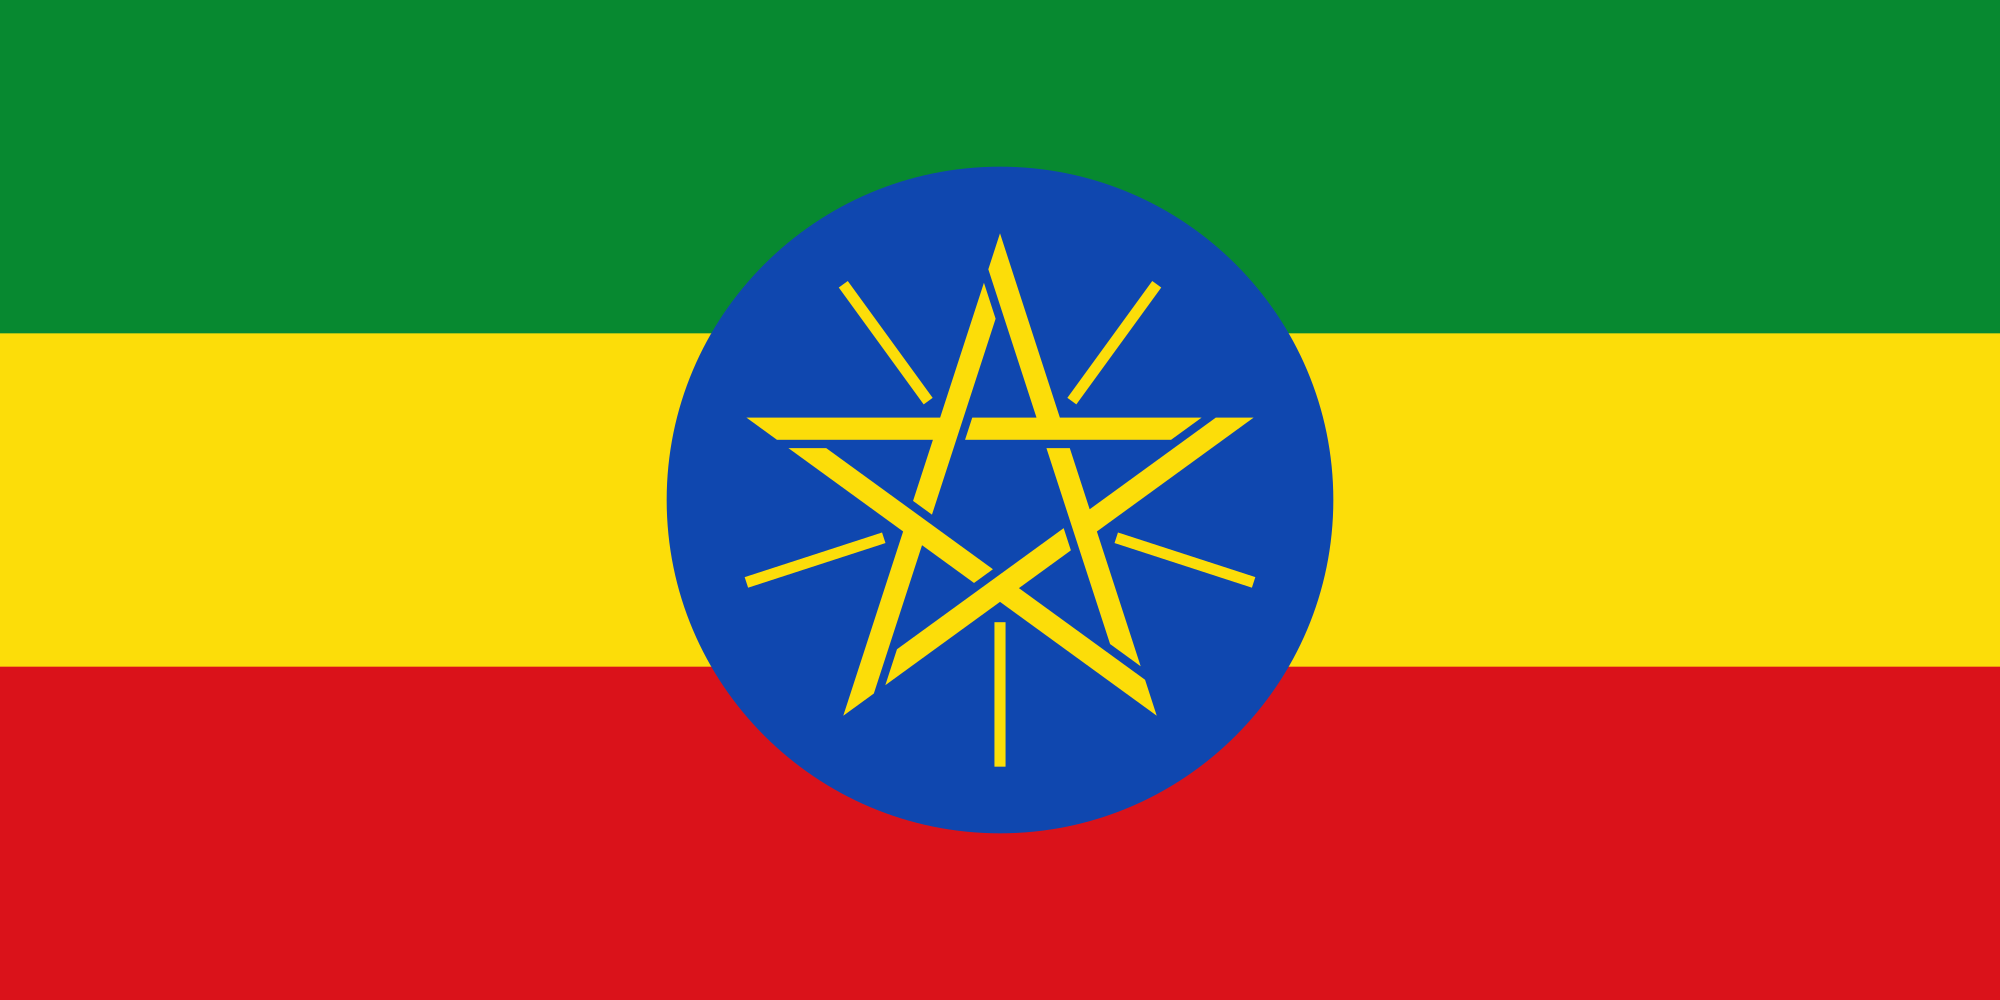 The Ethiopian Supreme Court Annuls a € 20 million Euro International Arbitral Award in Favor of an Italian Contractor Under the European Development Fund Rules (EDF)